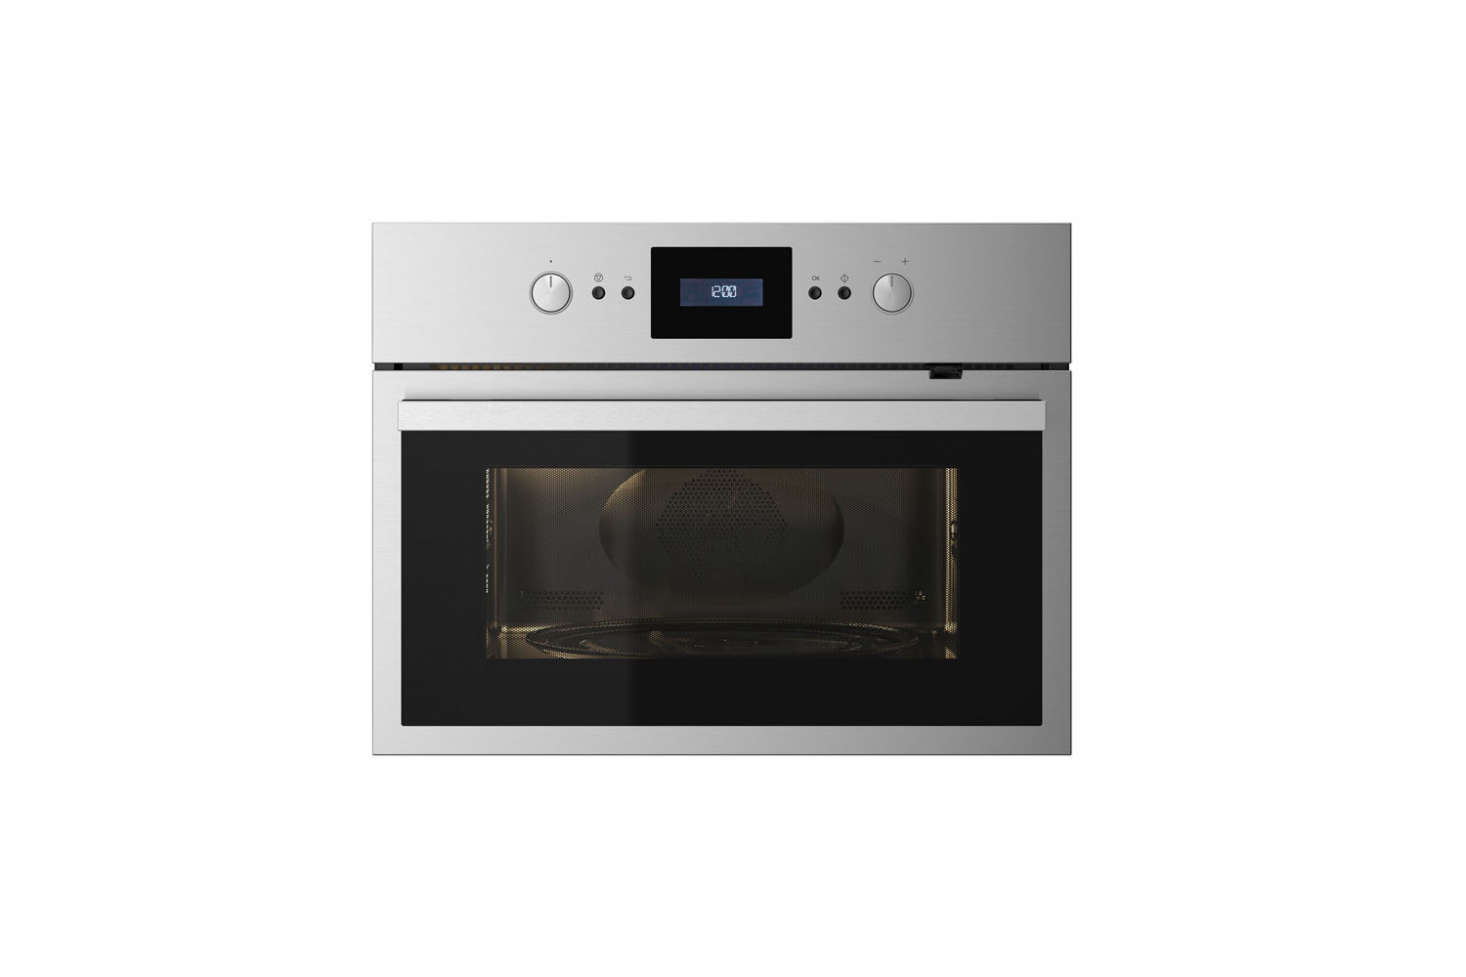 Marcia and Durrell sourced a combination microwave/oven at Ikea. TheRaffinerad Microwave Combi Oven (shown) is £500 ($687.) and only available at Ikea in the UK. The US equivalent from Ikea is theNutid Microwave Oven for $695.